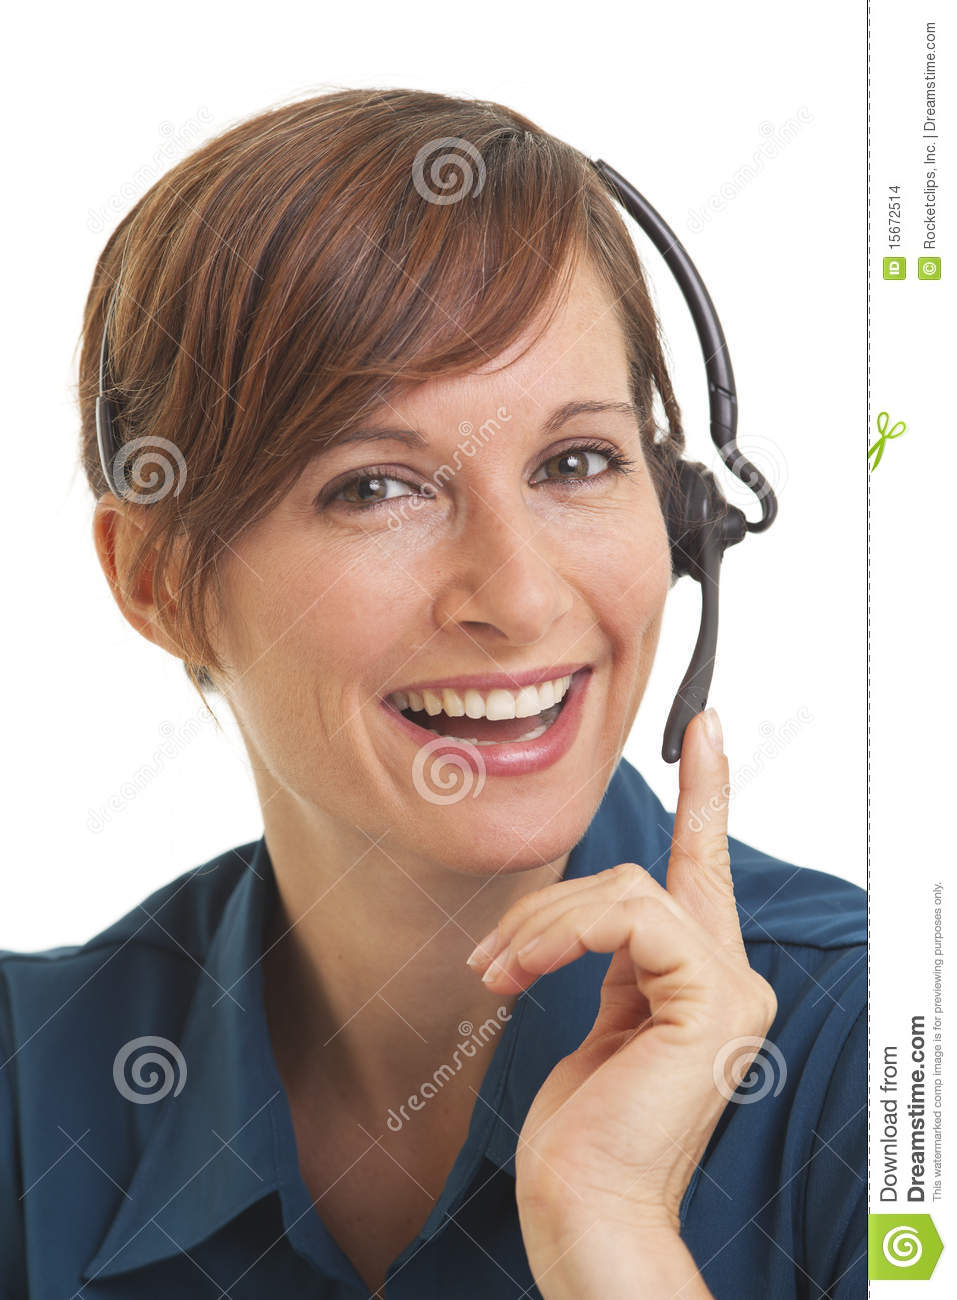 Woman telemarketer with hand on headset